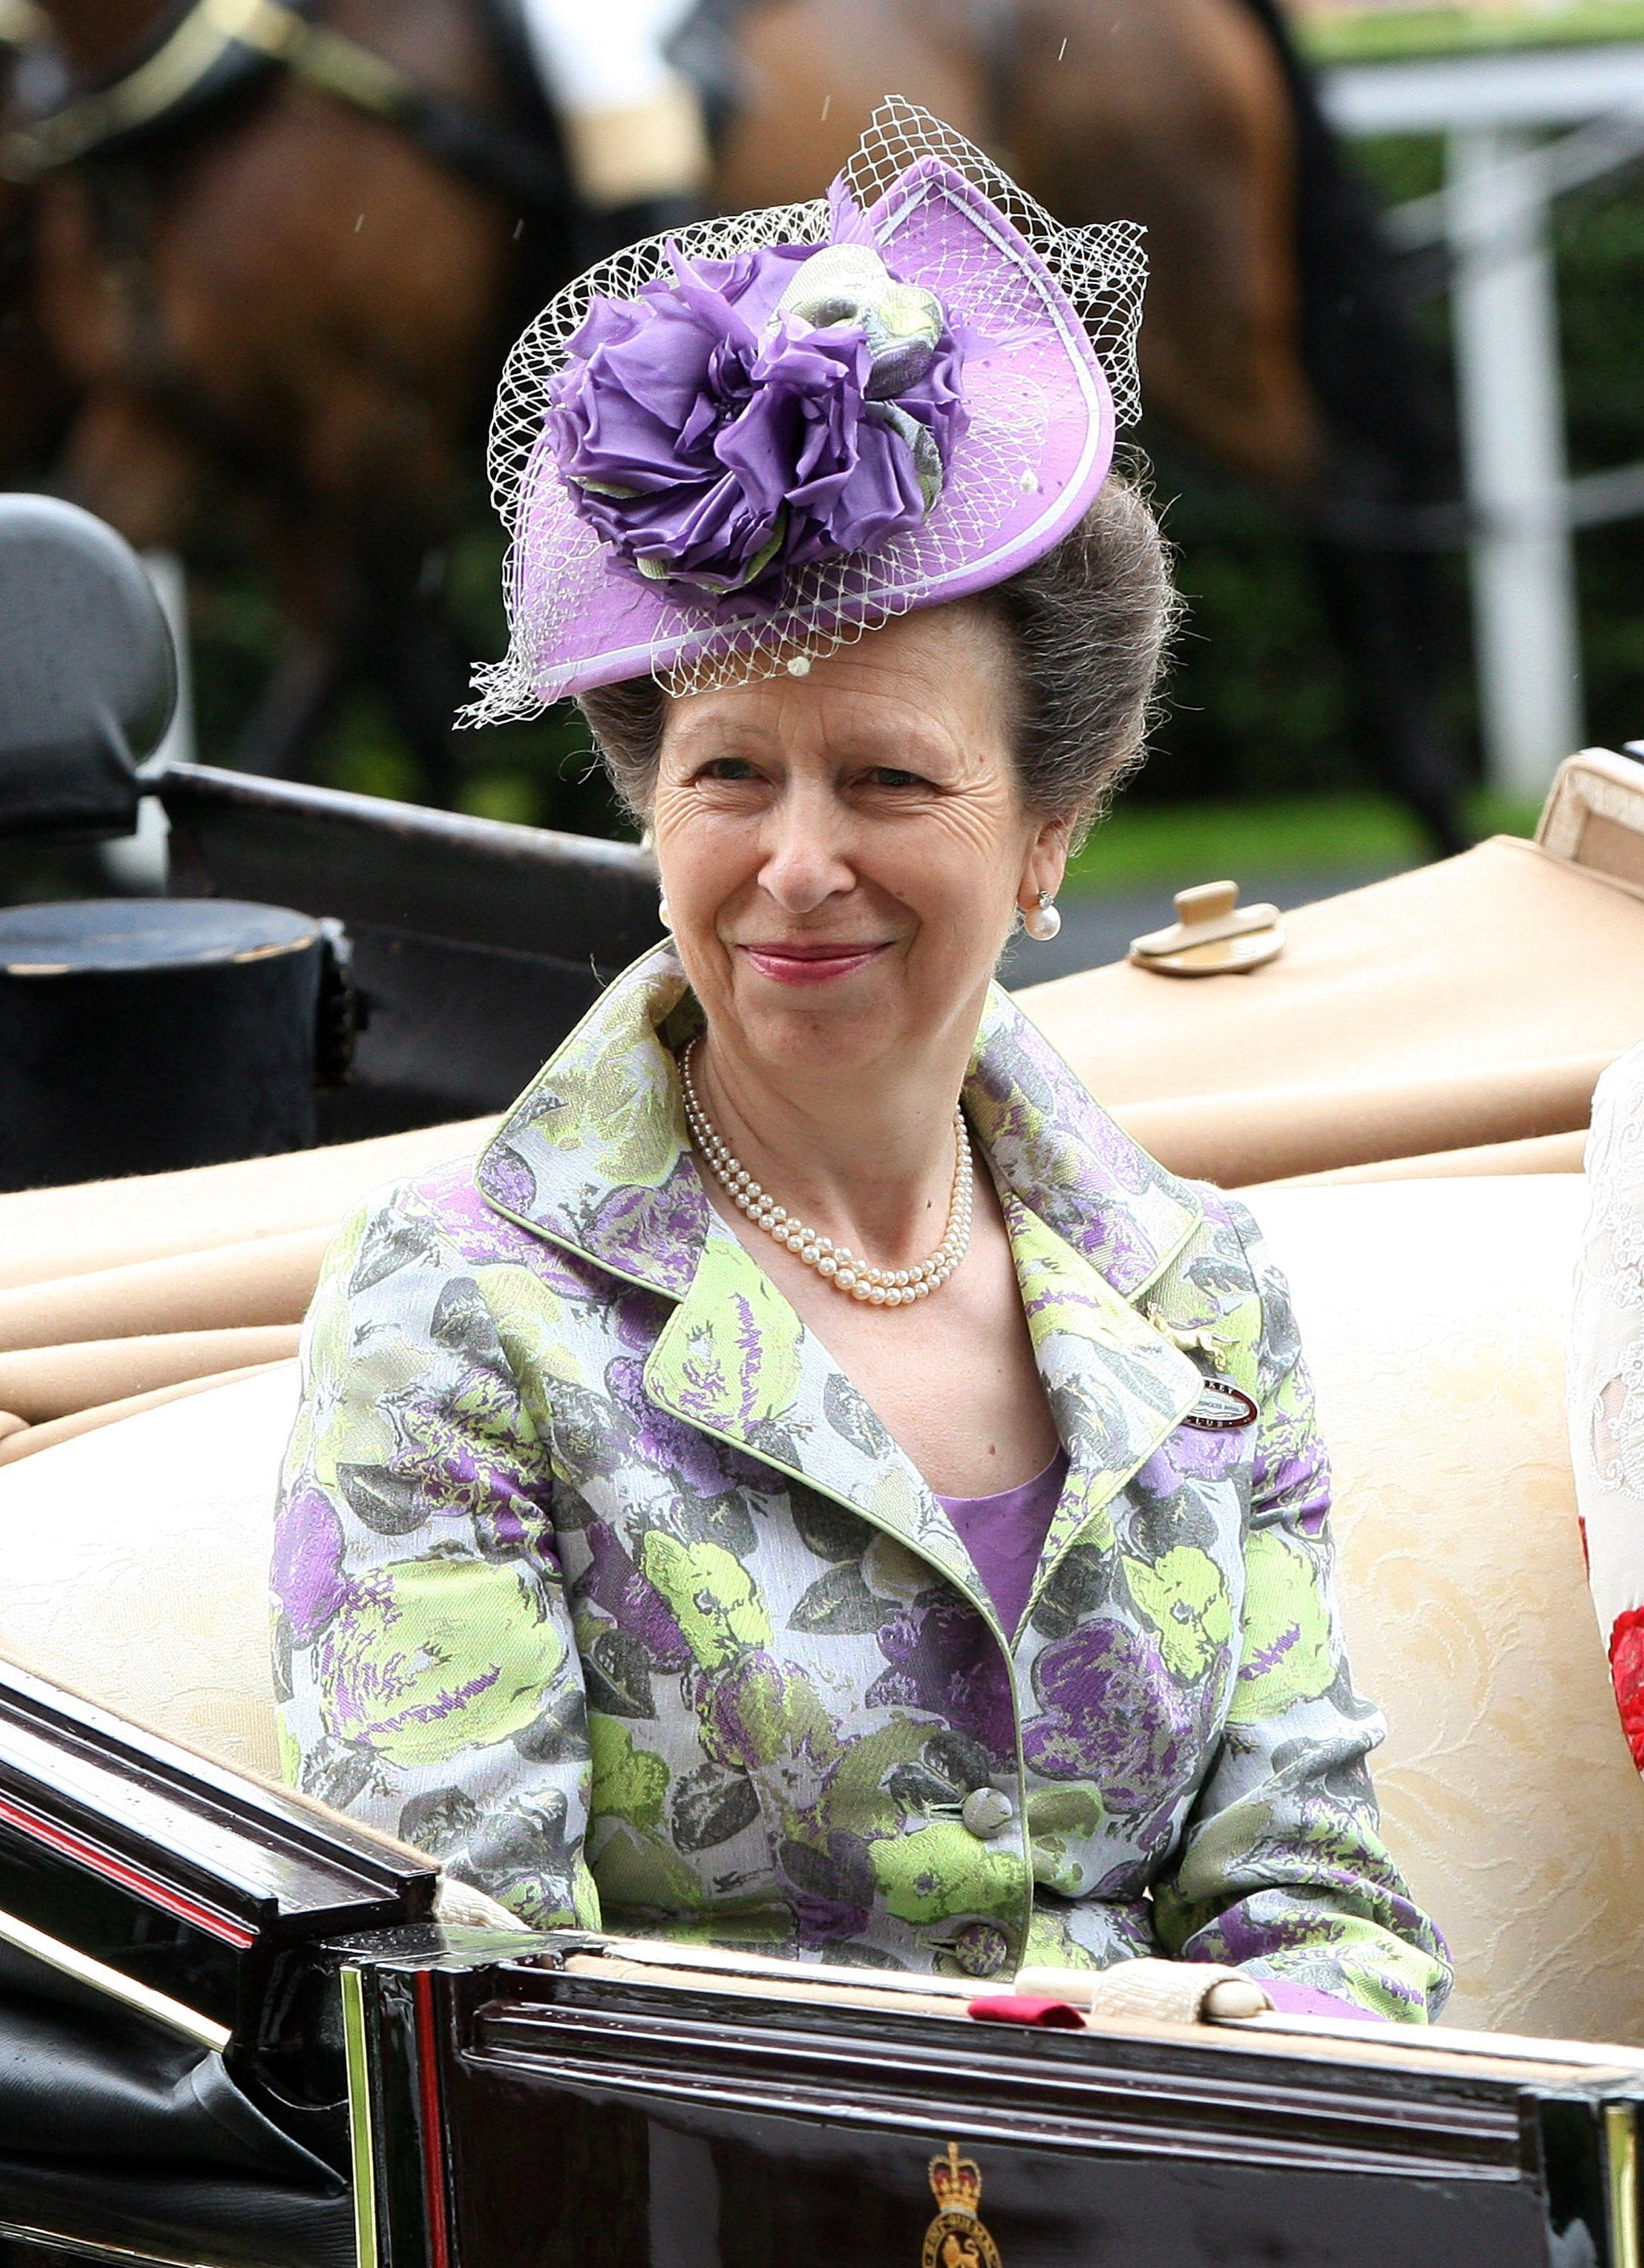 Headturning Hats — The Most EyeCatching Headwear at Royal